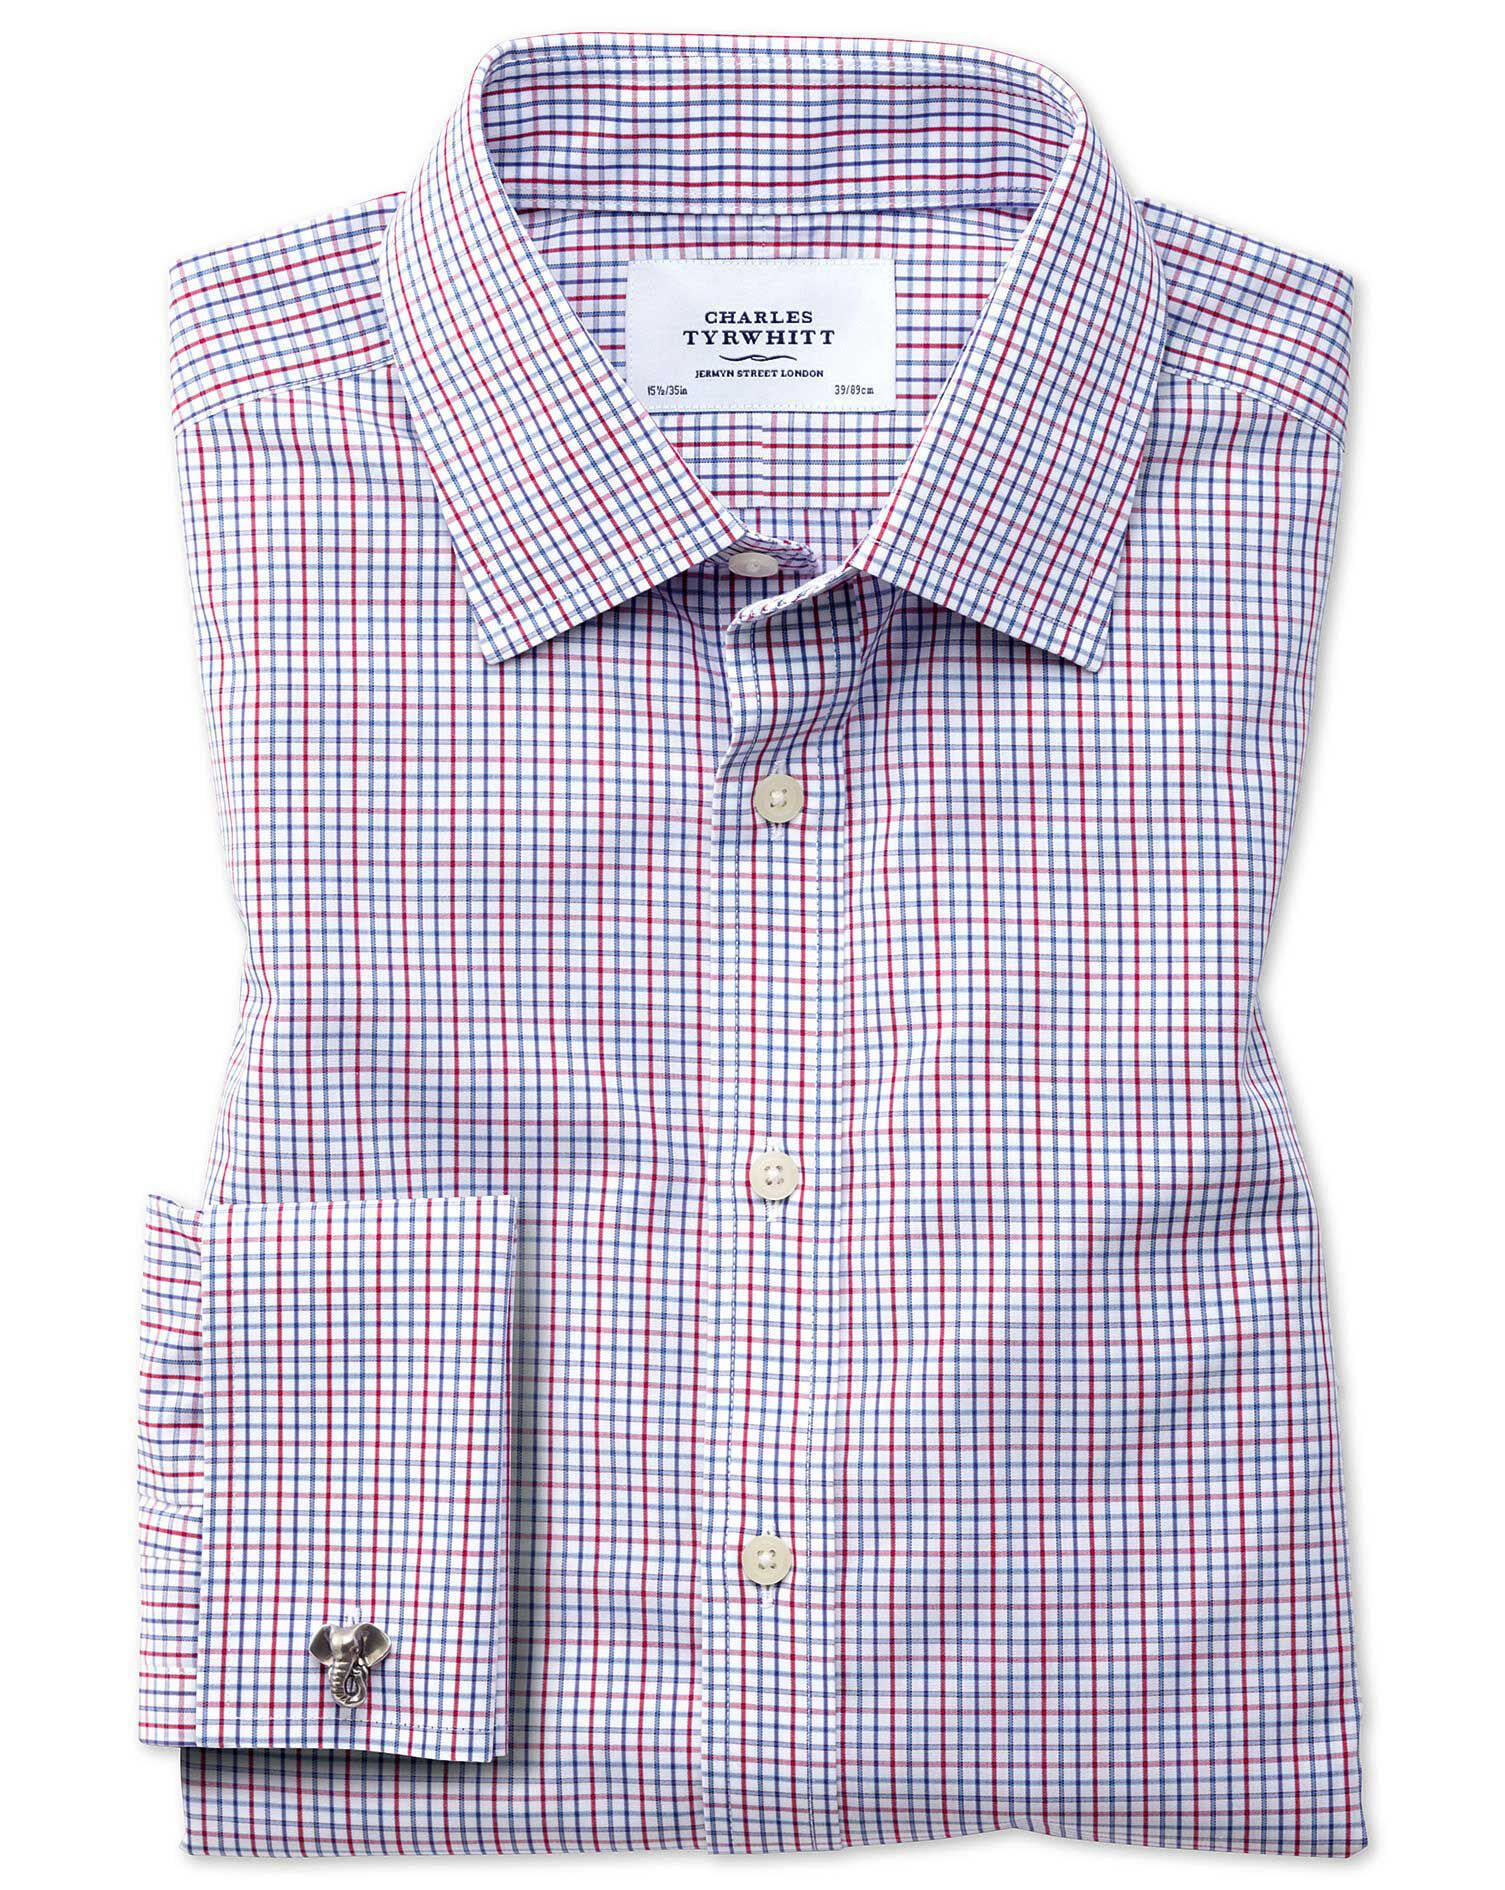 Classic Fit Non-Iron Multi Grid Check Cotton Formal Shirt Single Cuff Size 17.5/34 by Charles Tyrwhi